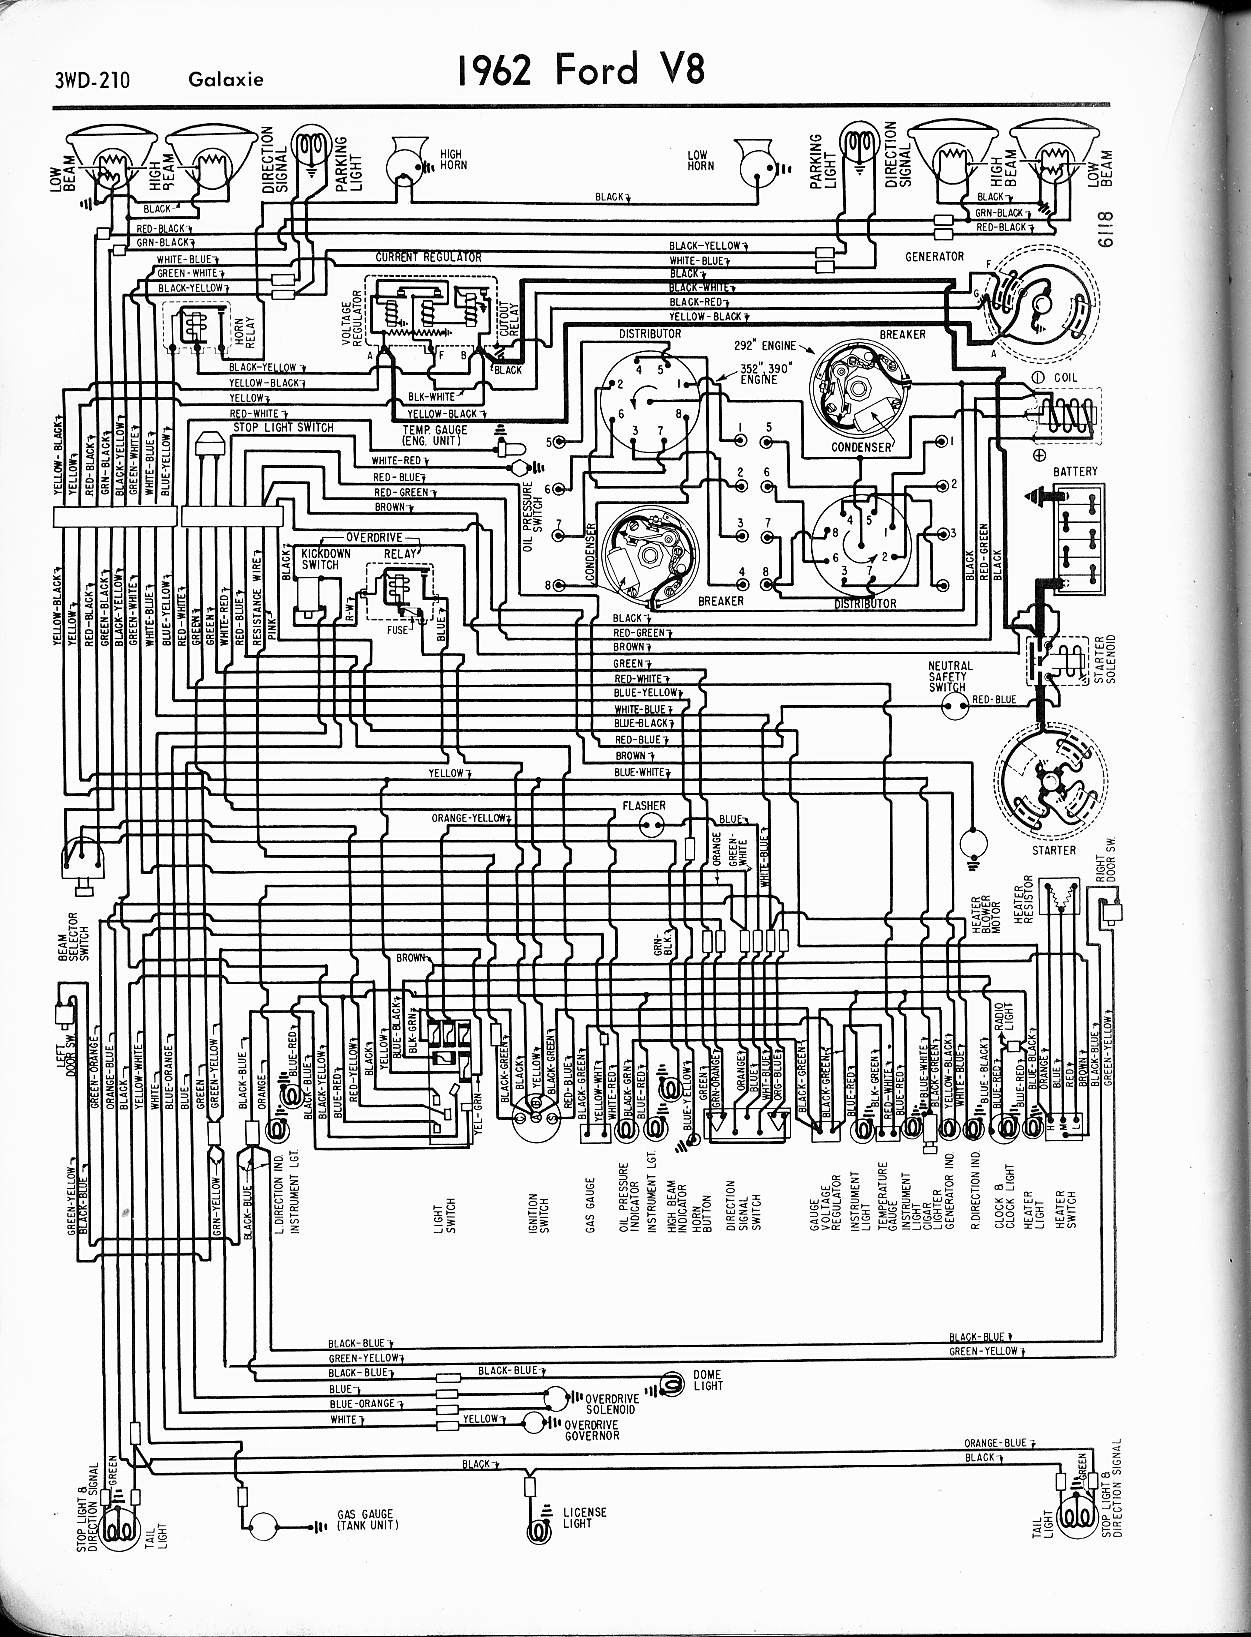 1965 Ford Falcon Ranchero Wiring Diagram Electrical Diagrams V8 Engine Block Galaxie Automotive U2022 Rh Carwiringdiagram Today 1964 Futura Fader